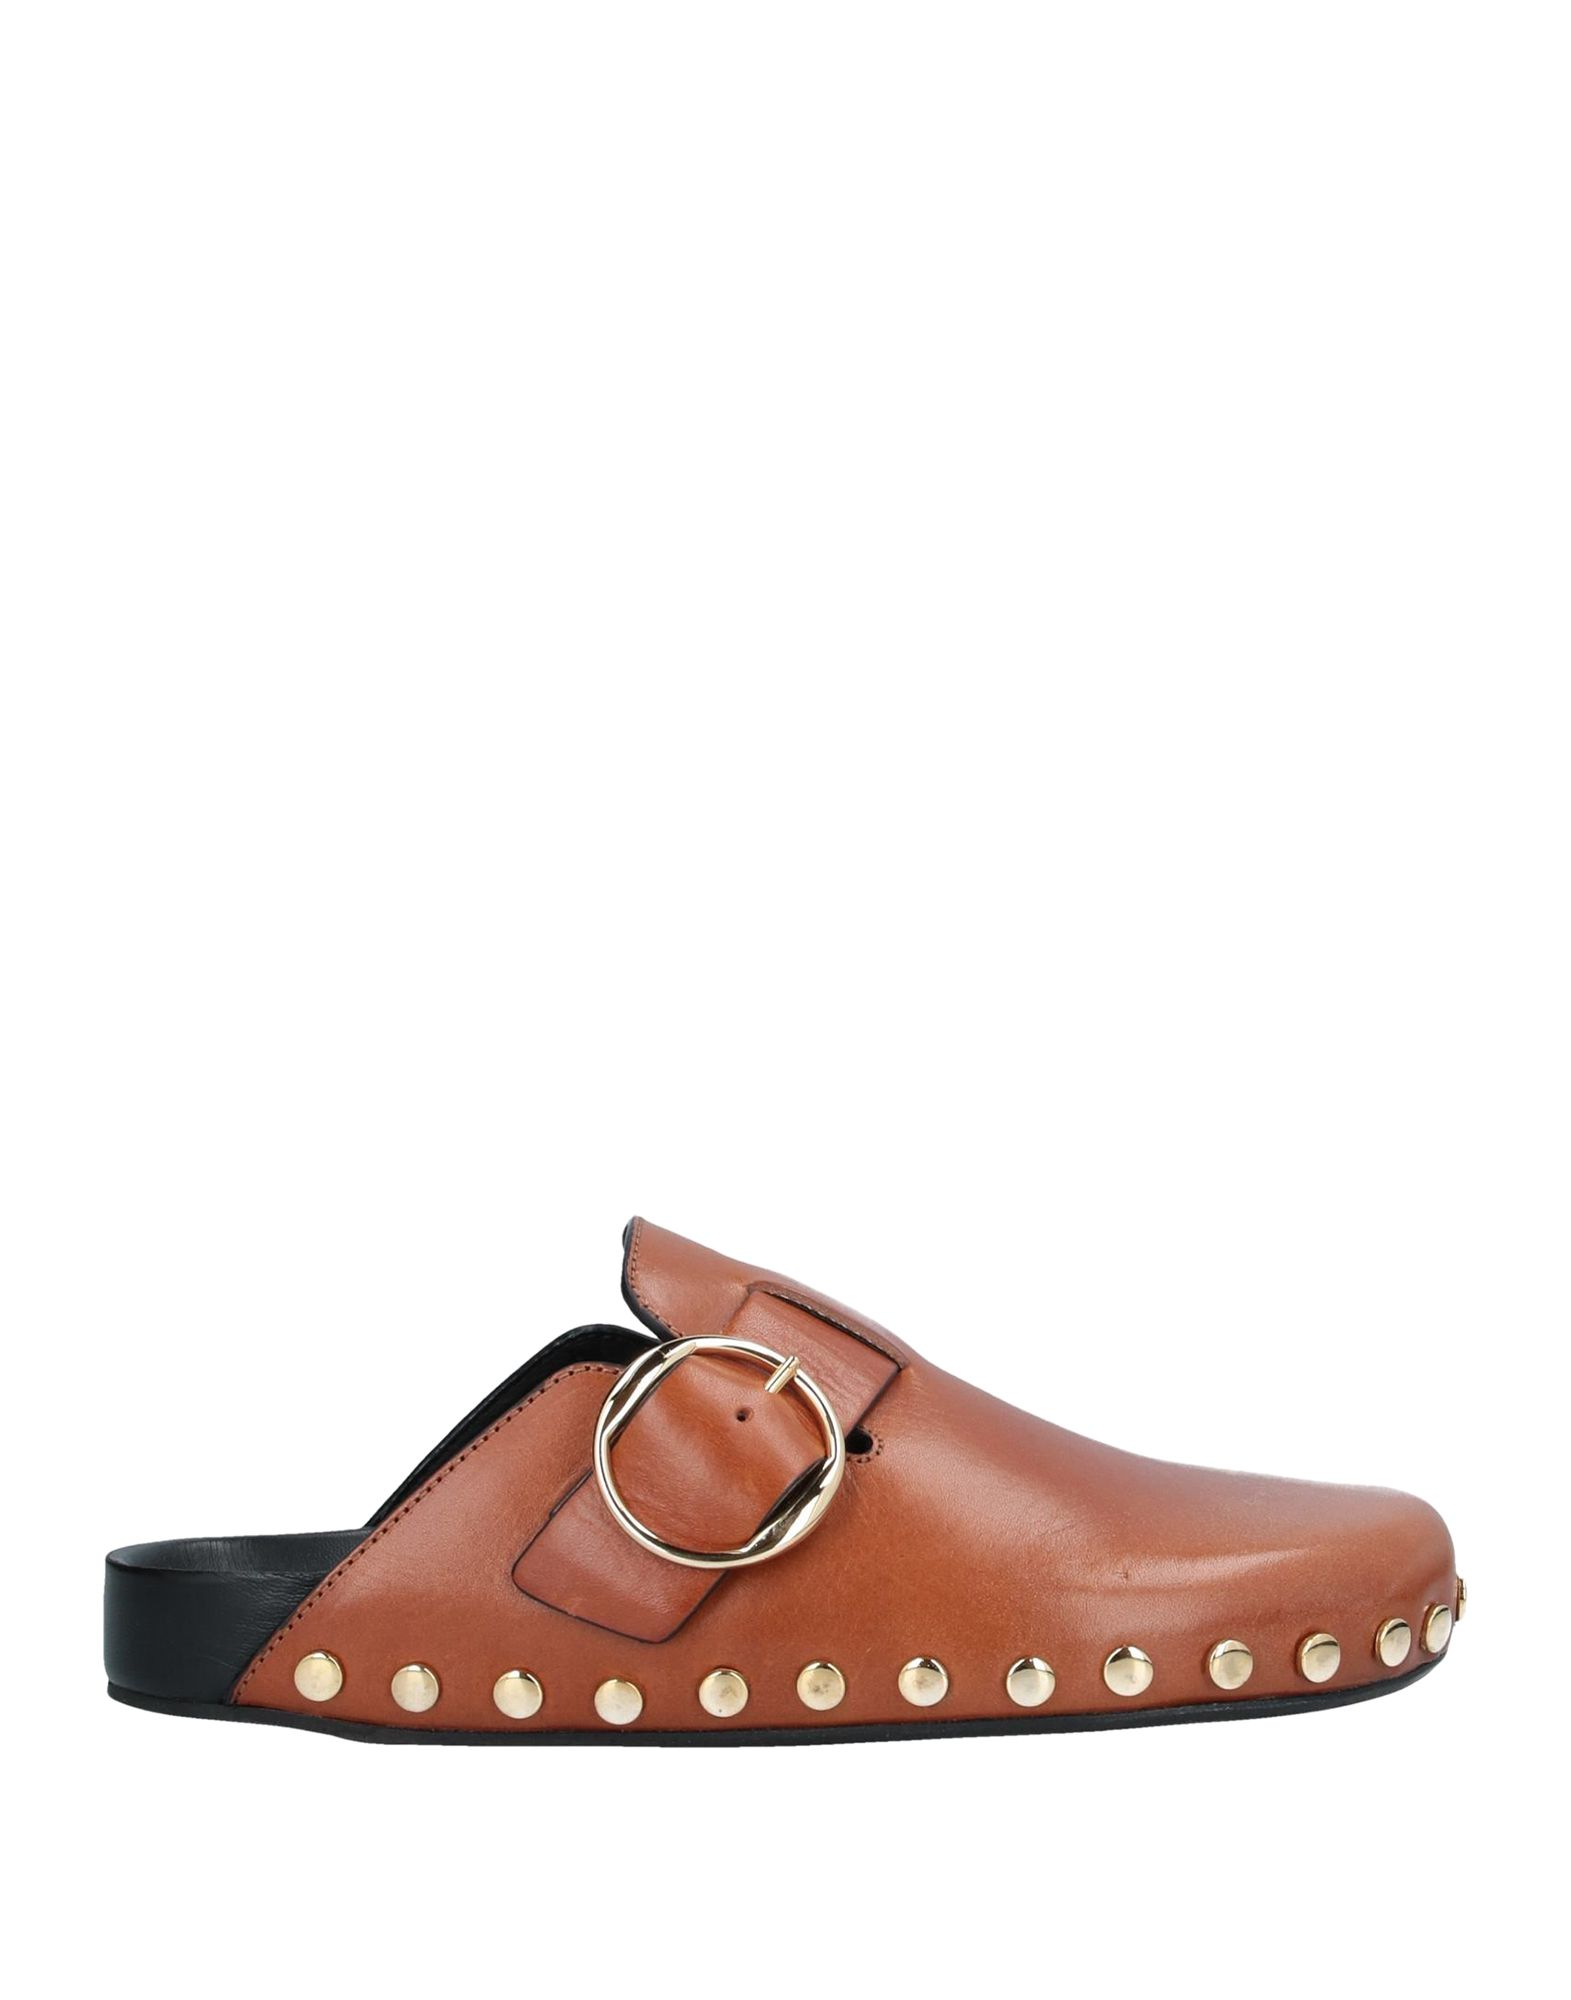 ISABEL MARANT Mules. metal applications, solid color, buckle, round toeline, flat, leather lining, leather sole, contains non-textile parts of animal origin, small sized. Calfskin